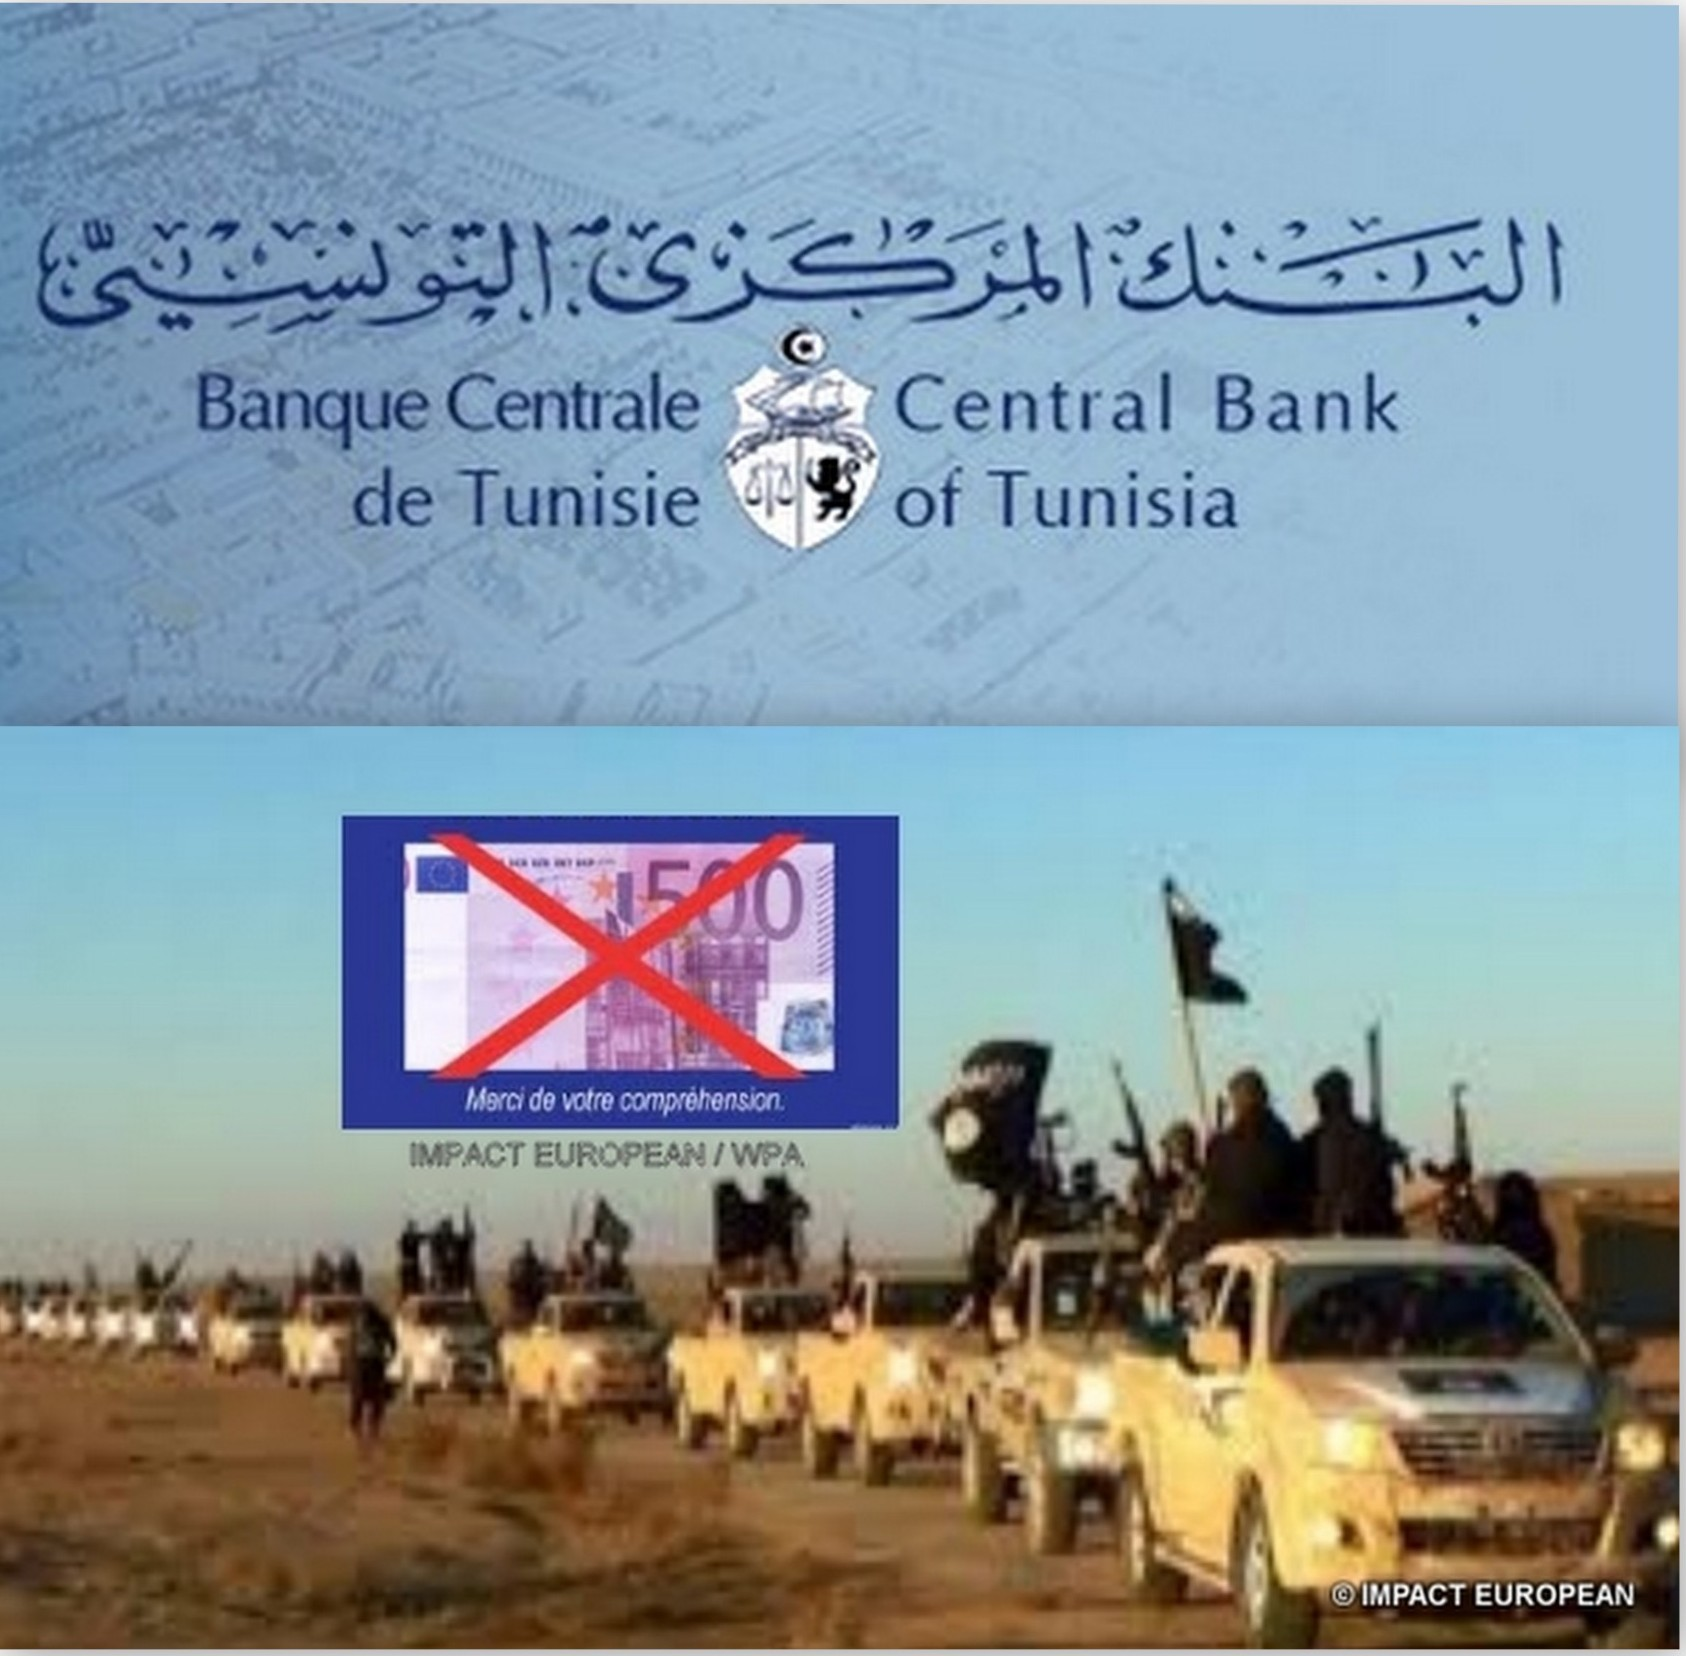 The Central Bank of Tunisia freezes colossal sums destined to the financing of terrorism